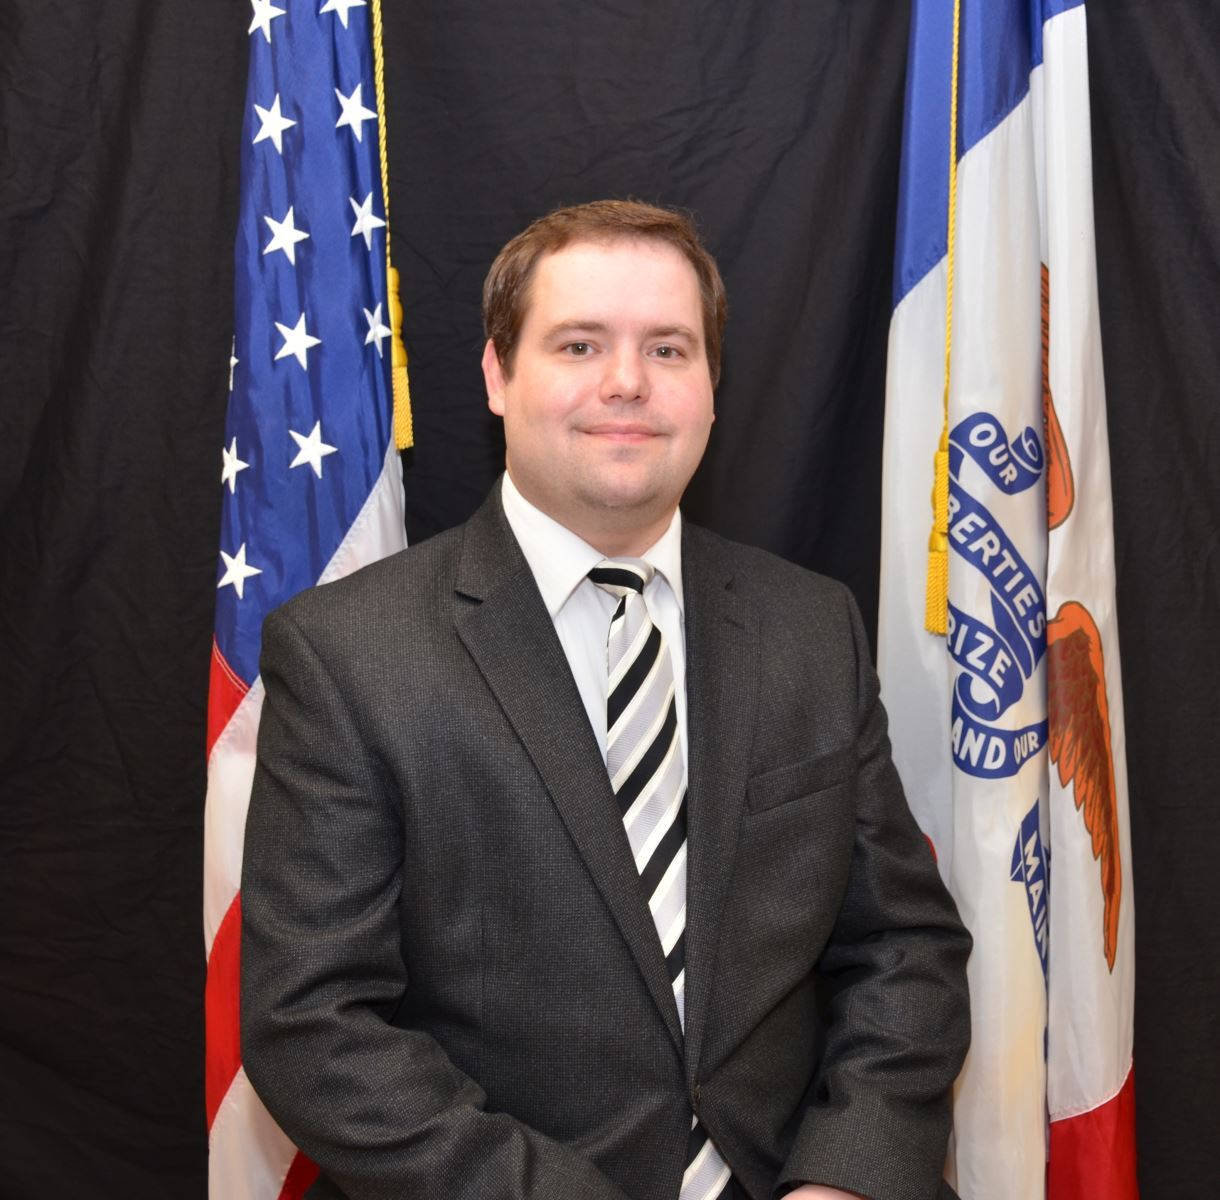 Hawk County Attorney, Brian J. Williams